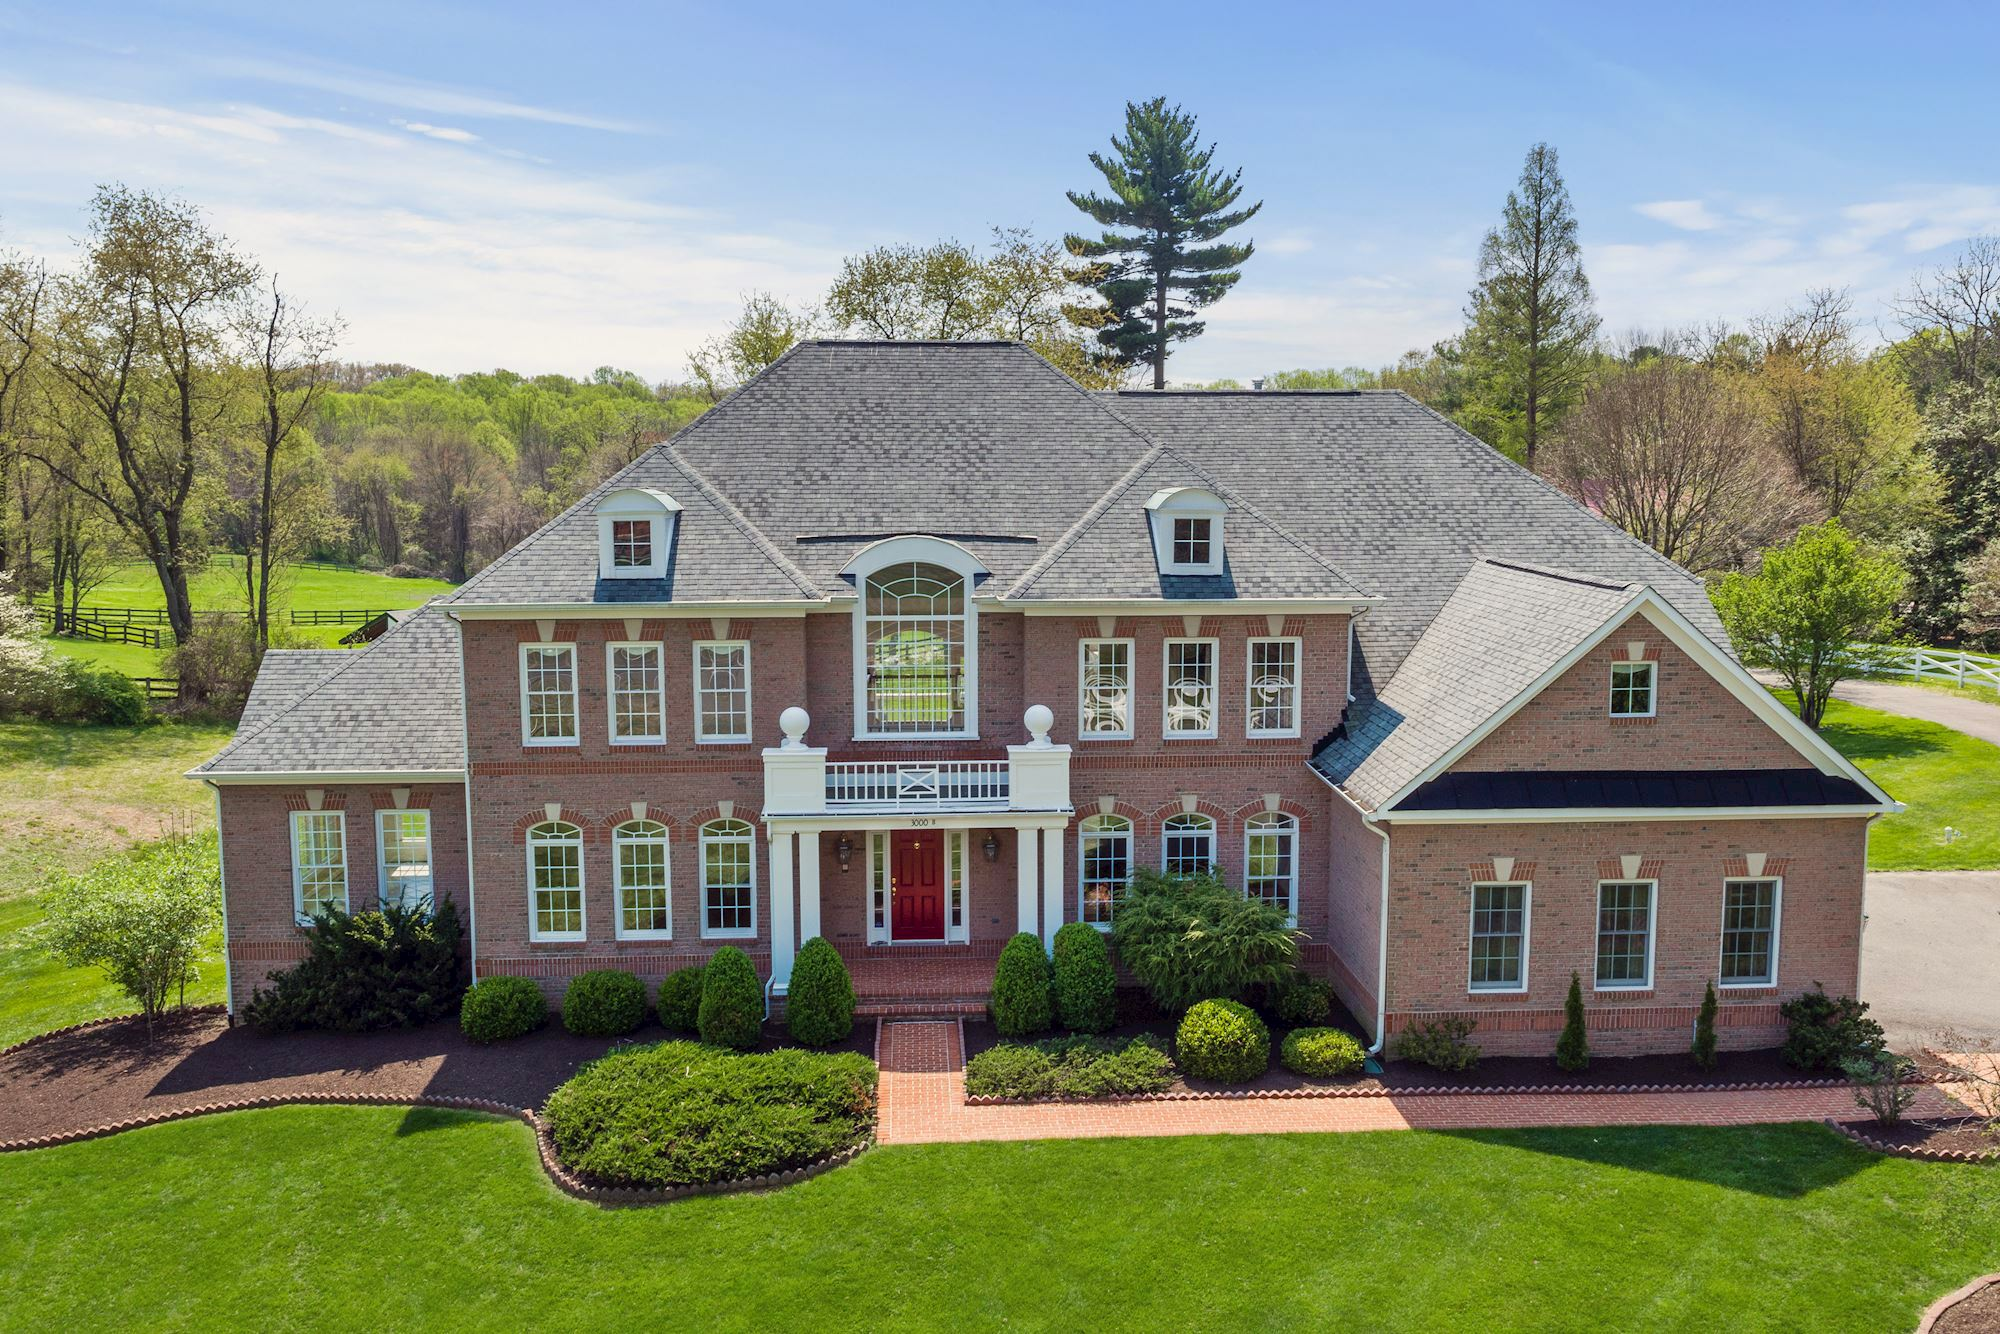 NEW LISTING: Spectacular Manor Home in Oakton